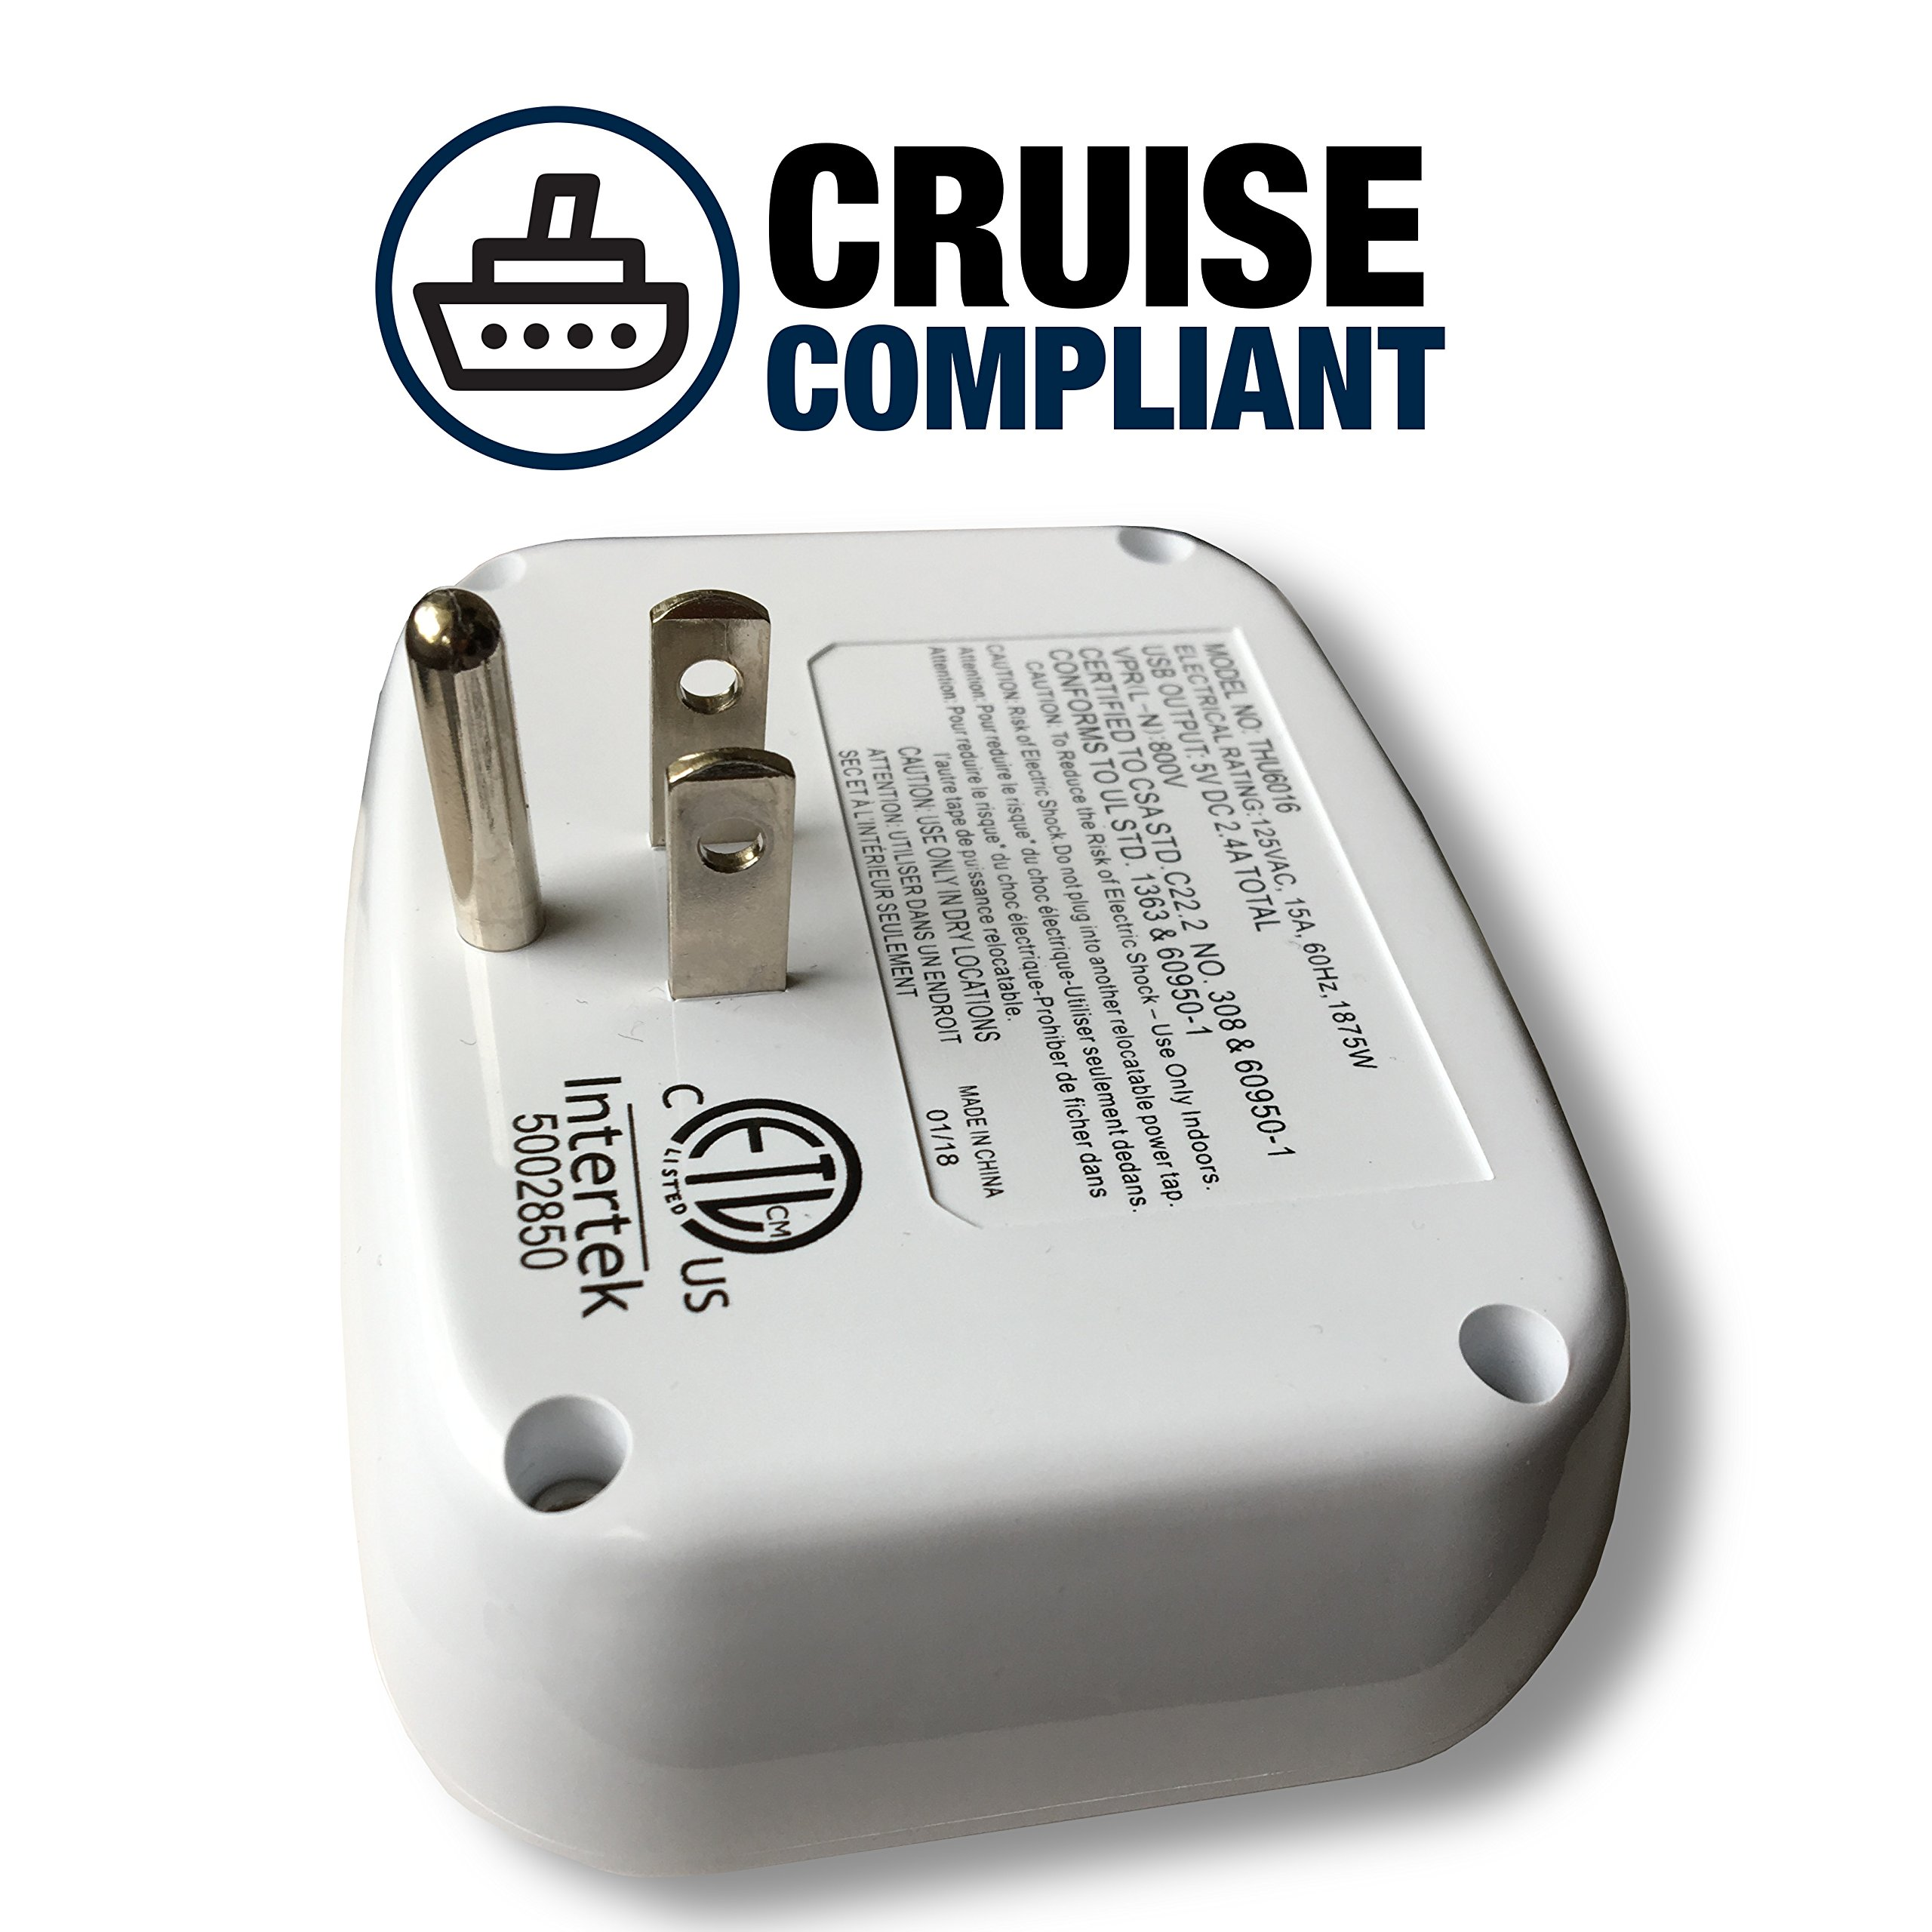 Cruise Power Strip with USB Outlets - Non Surge Protection - Cruise Ship Approved by Cruise On (Image #2)